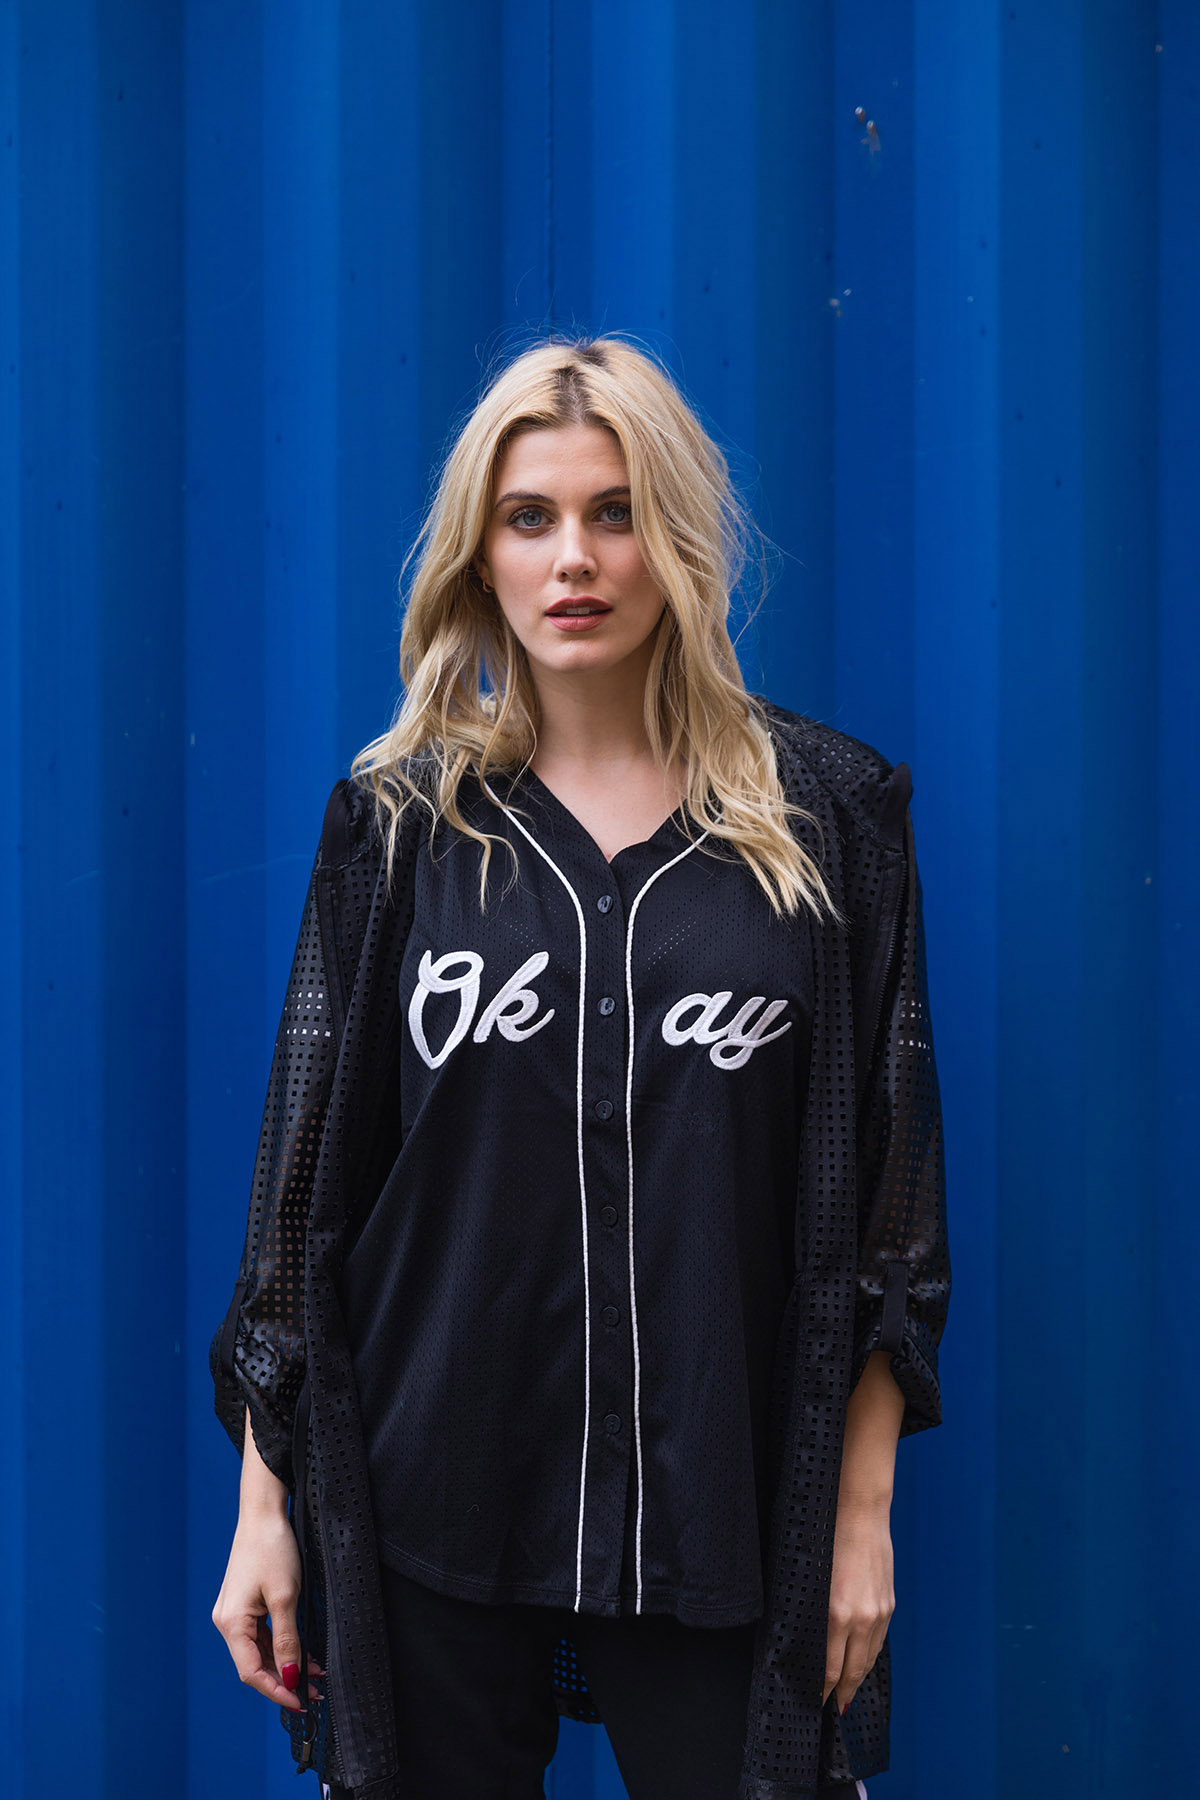 ashley james ath-leisure baseball top